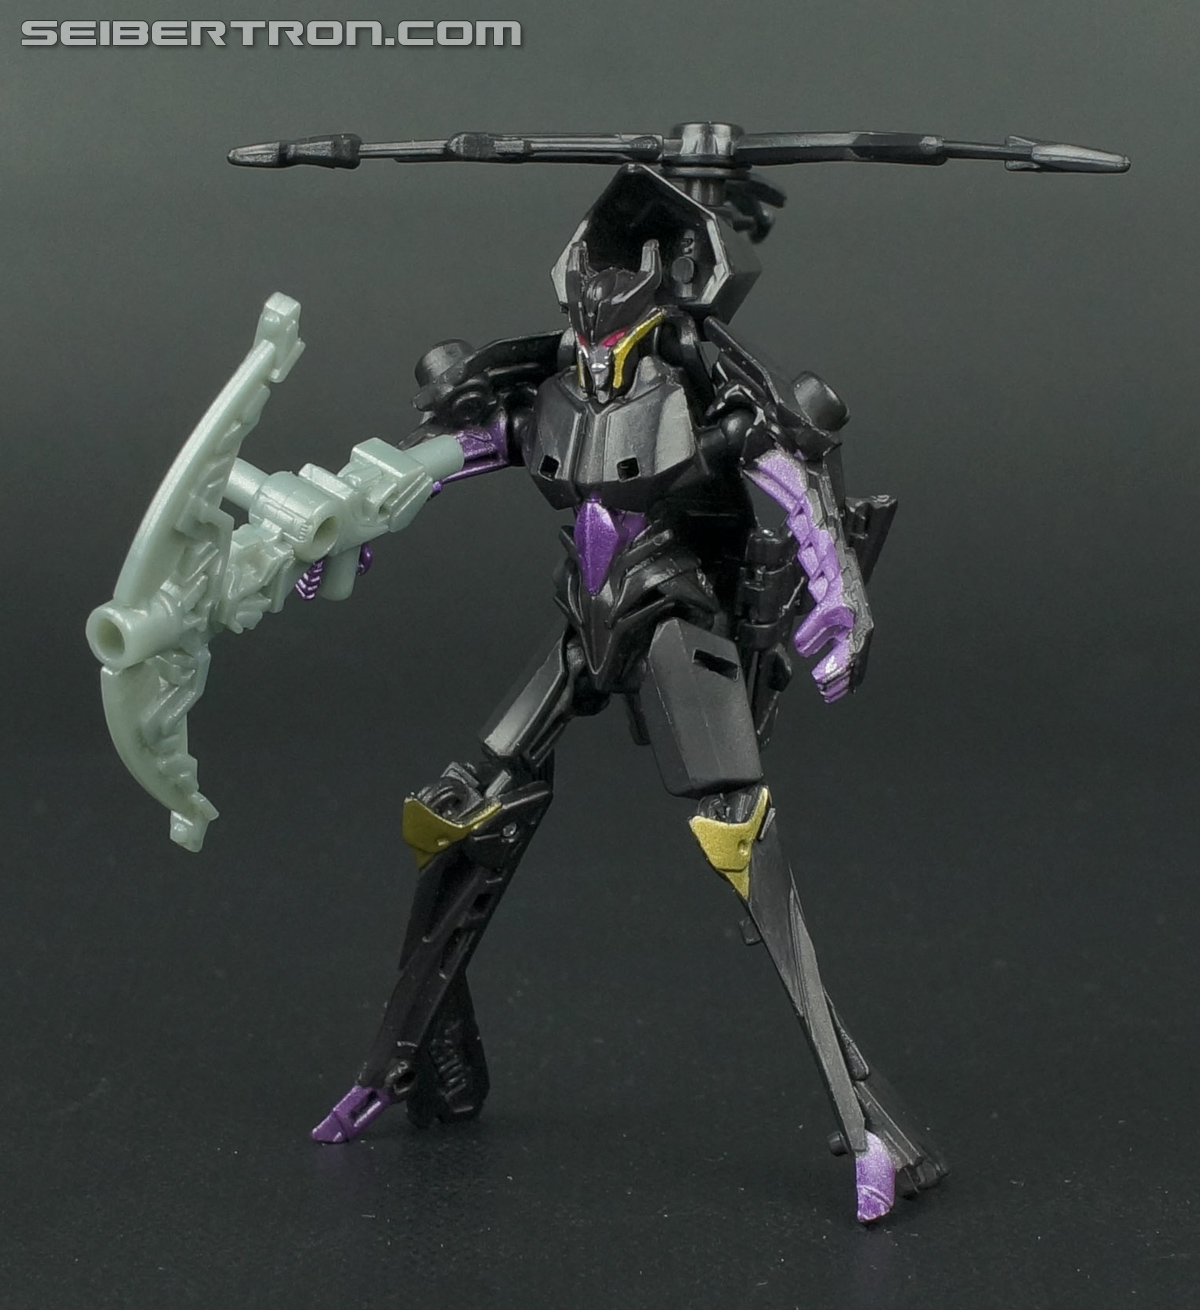 Transformers Prime Beast Hunters Cyberverse Airachnid (Image #74 of 93)